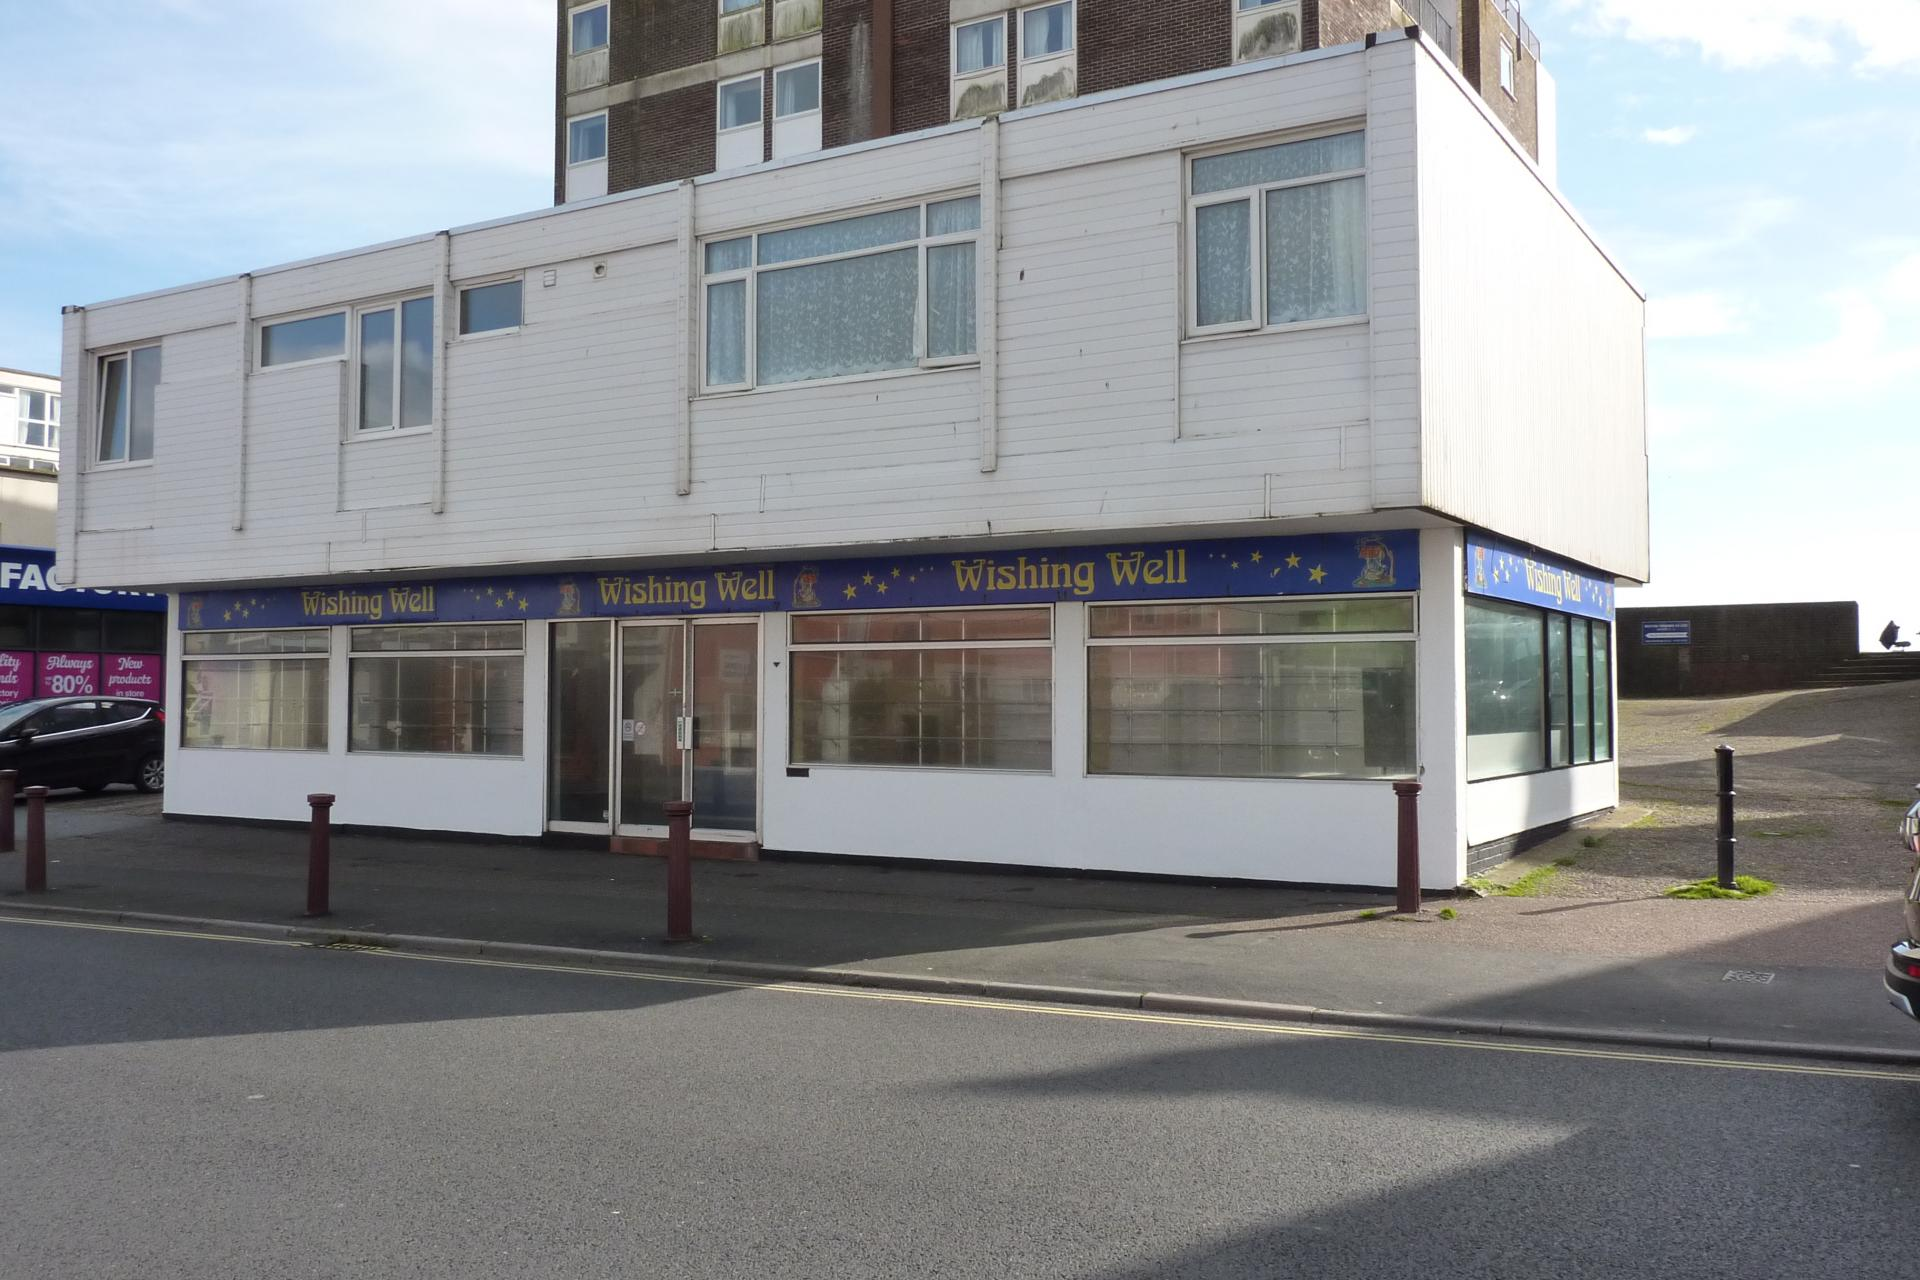 Property for sale in Harbour Road, Seaton